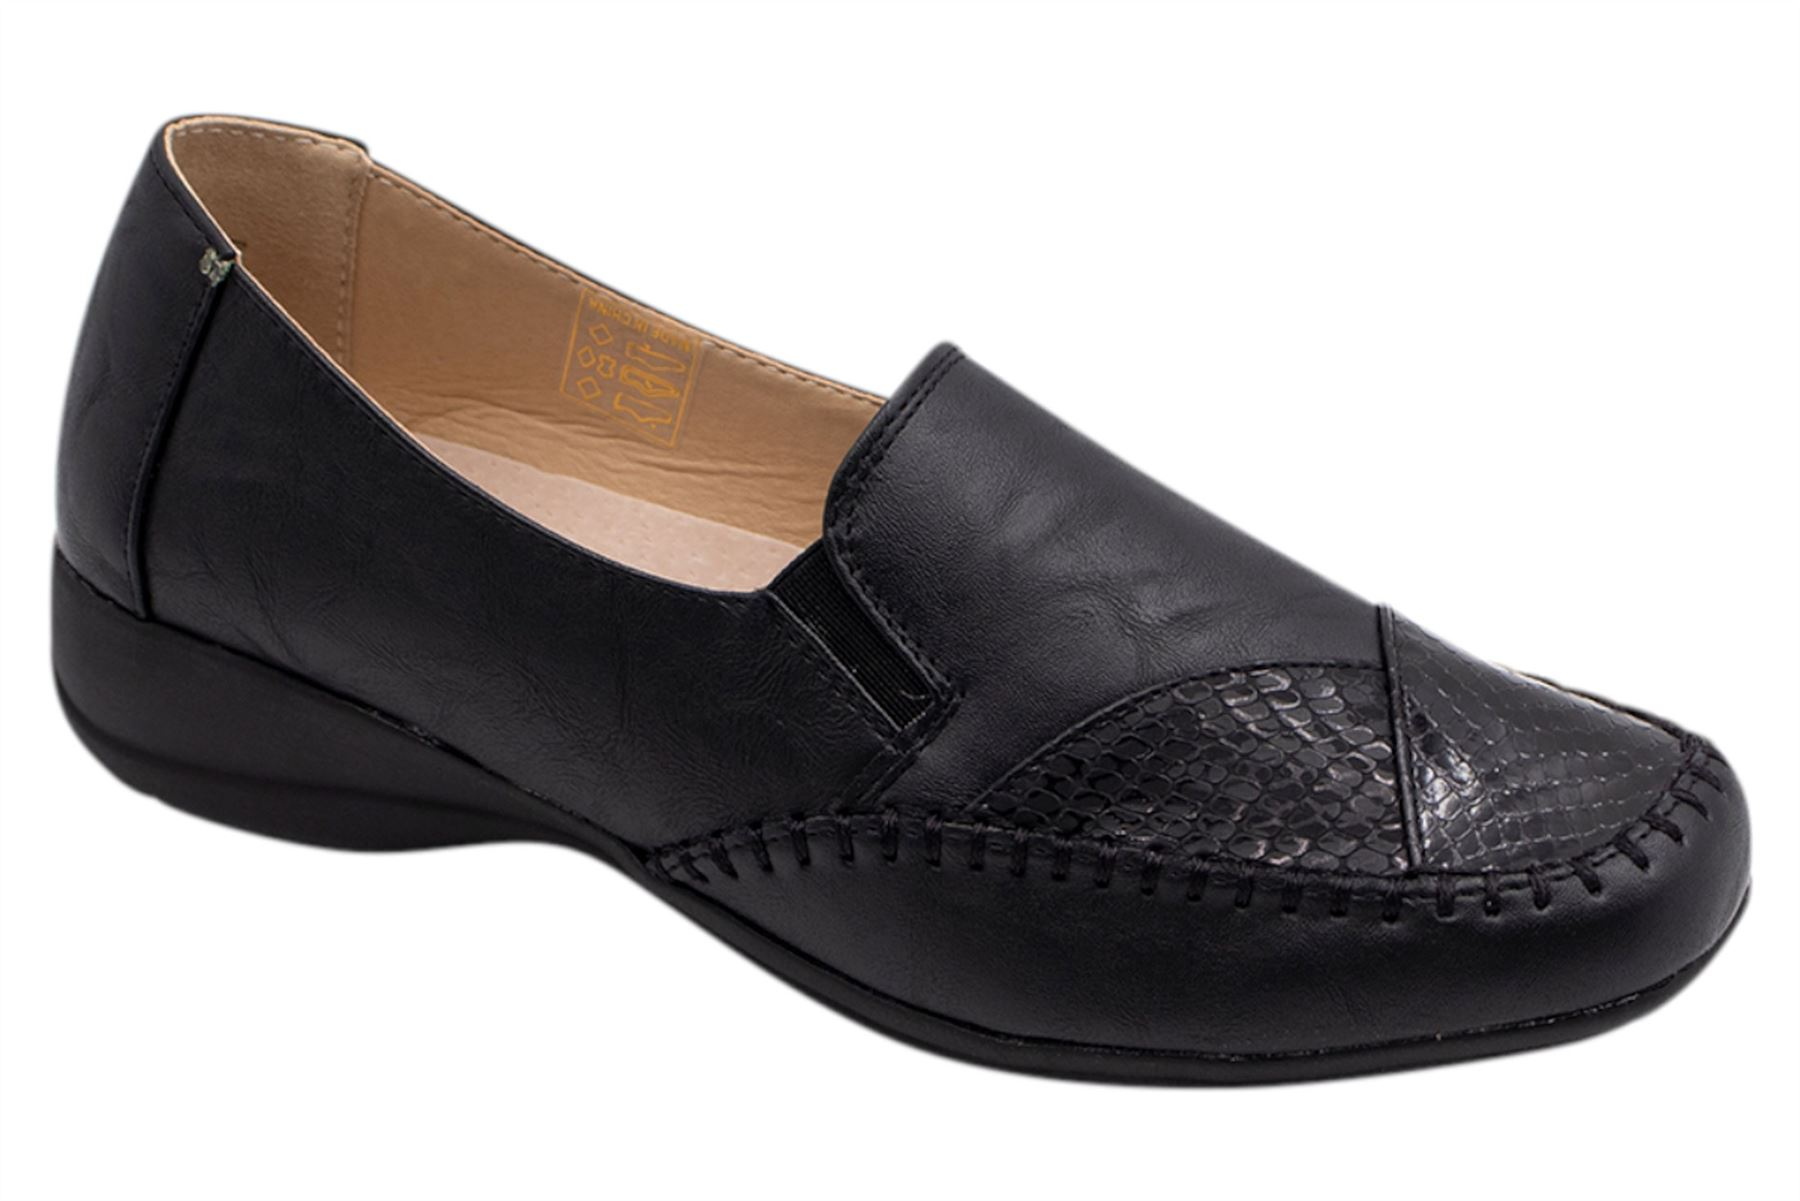 Womens-Flat-Shoes-Ladies-Pumps-Office-Work-Casual-Slip-On-Loafer-Size thumbnail 5